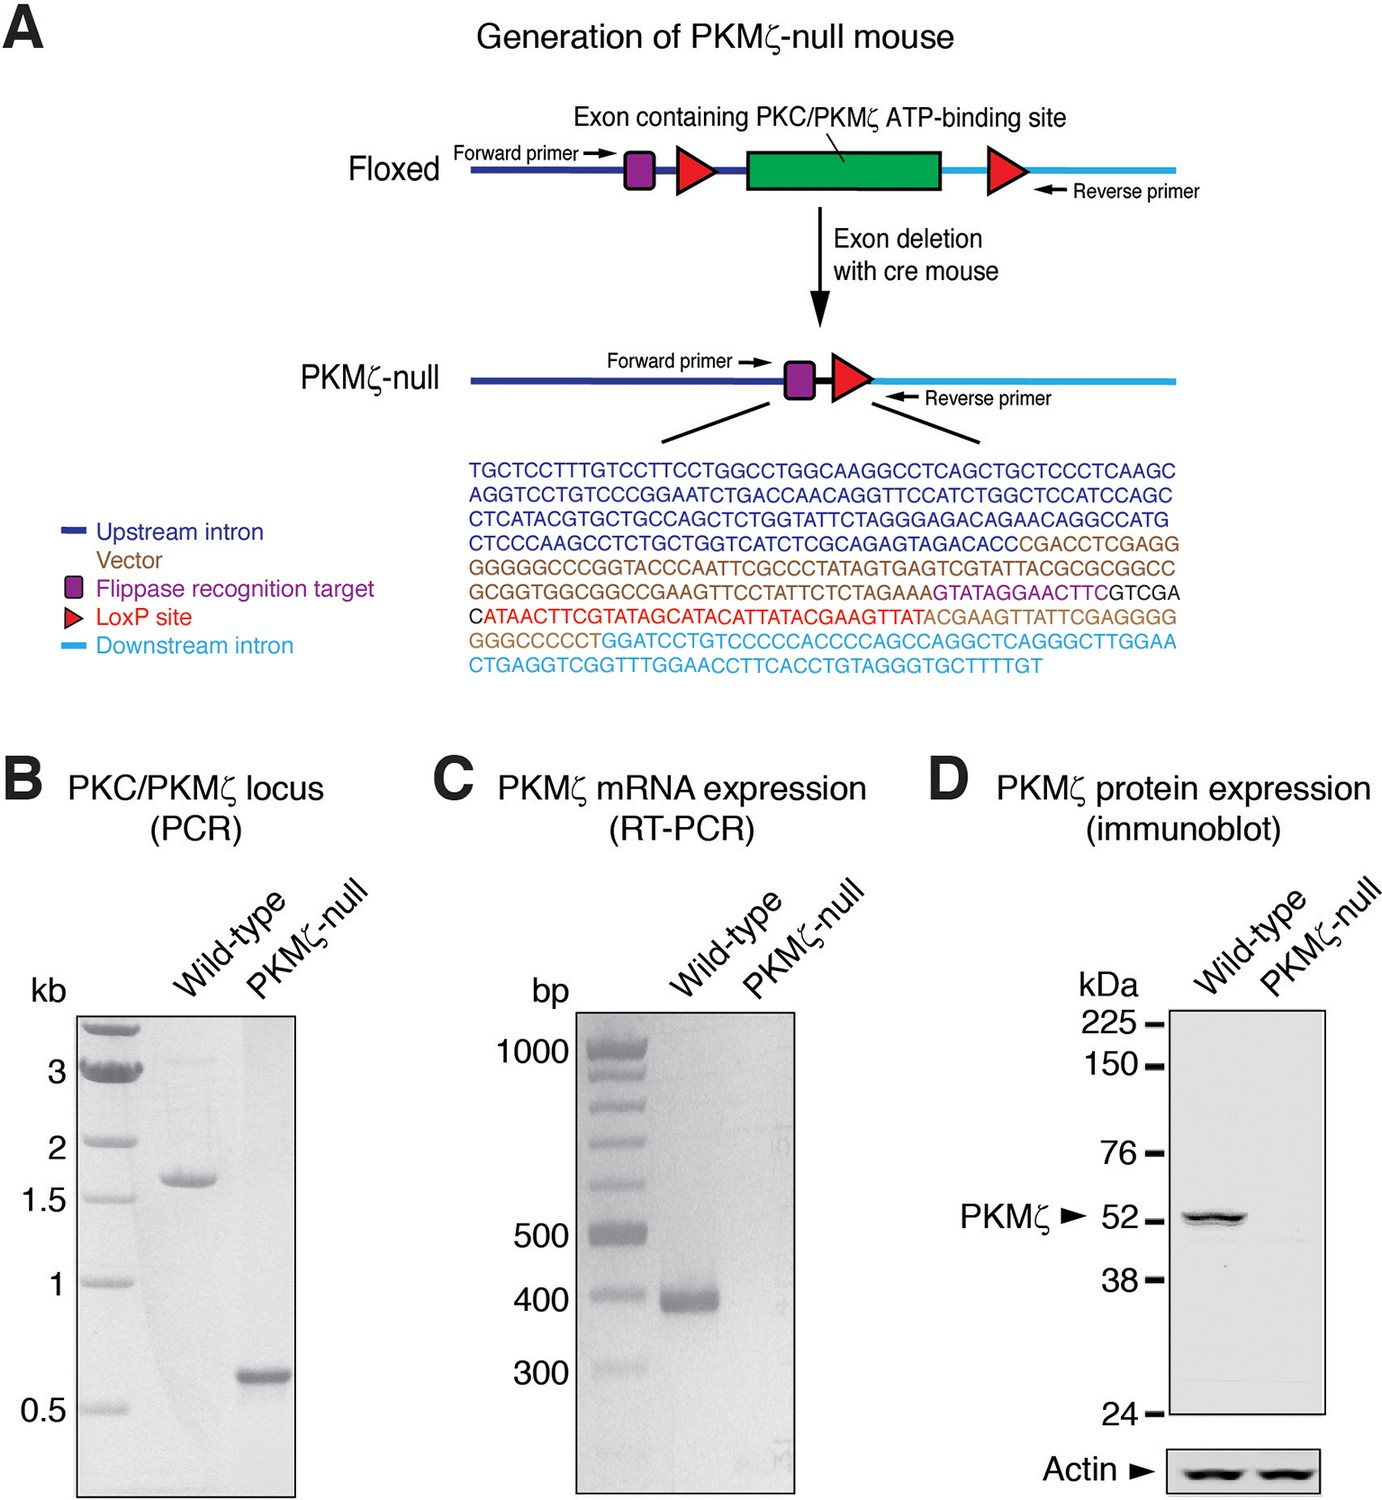 Compensation for PKMζ in long-term potentiation and spatial long